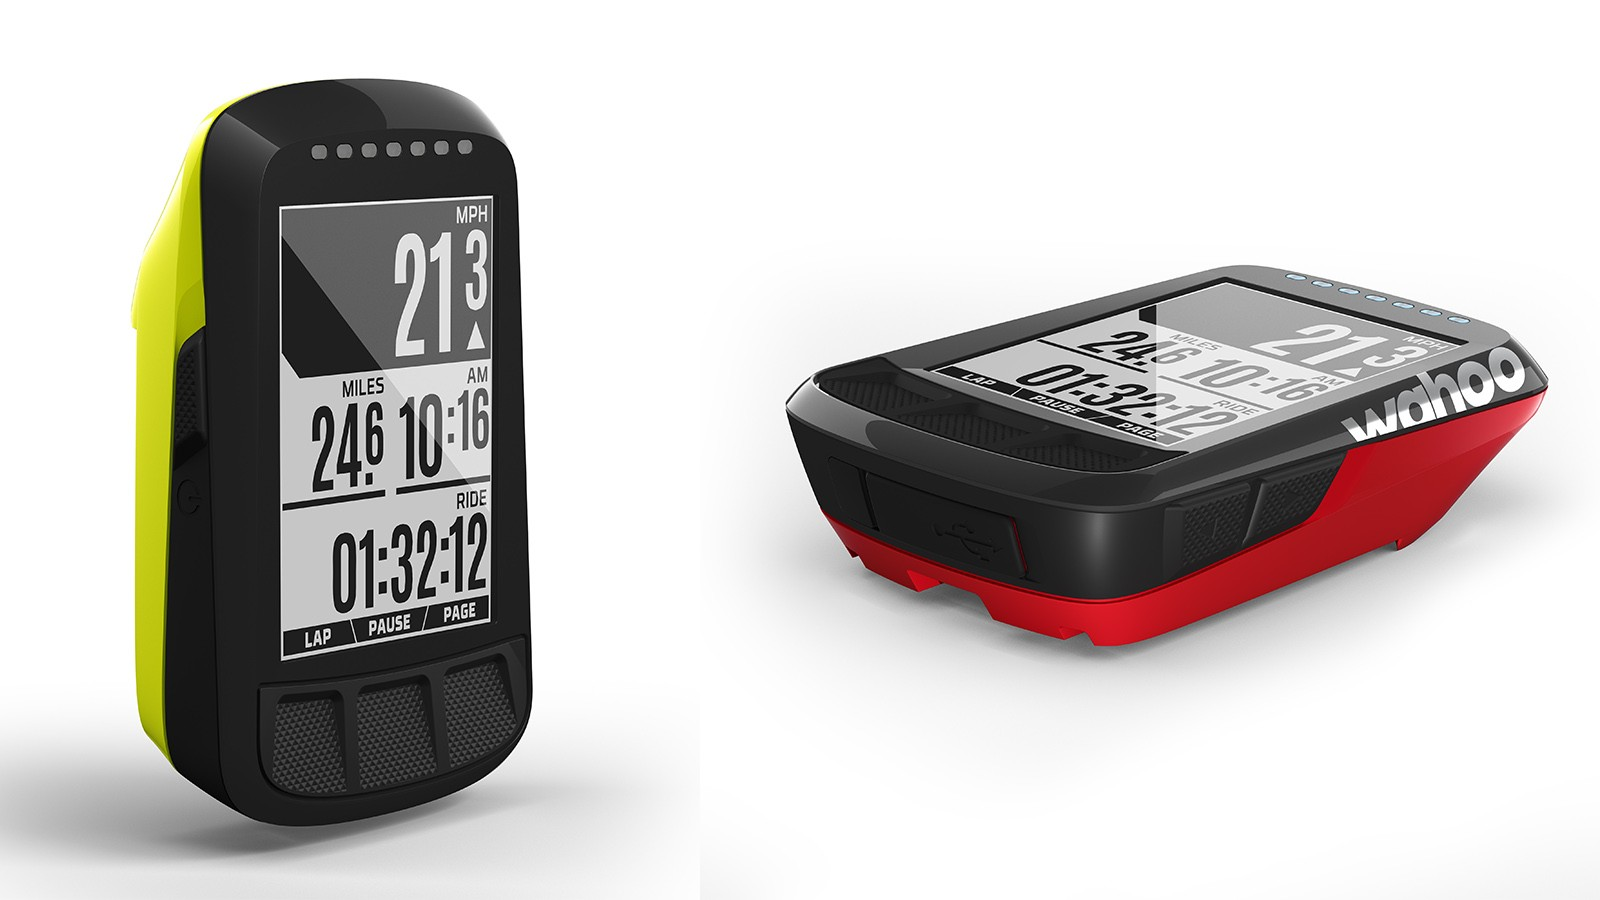 For a limited time, the Wahoo Elemnt Bolt is available in yellow and red